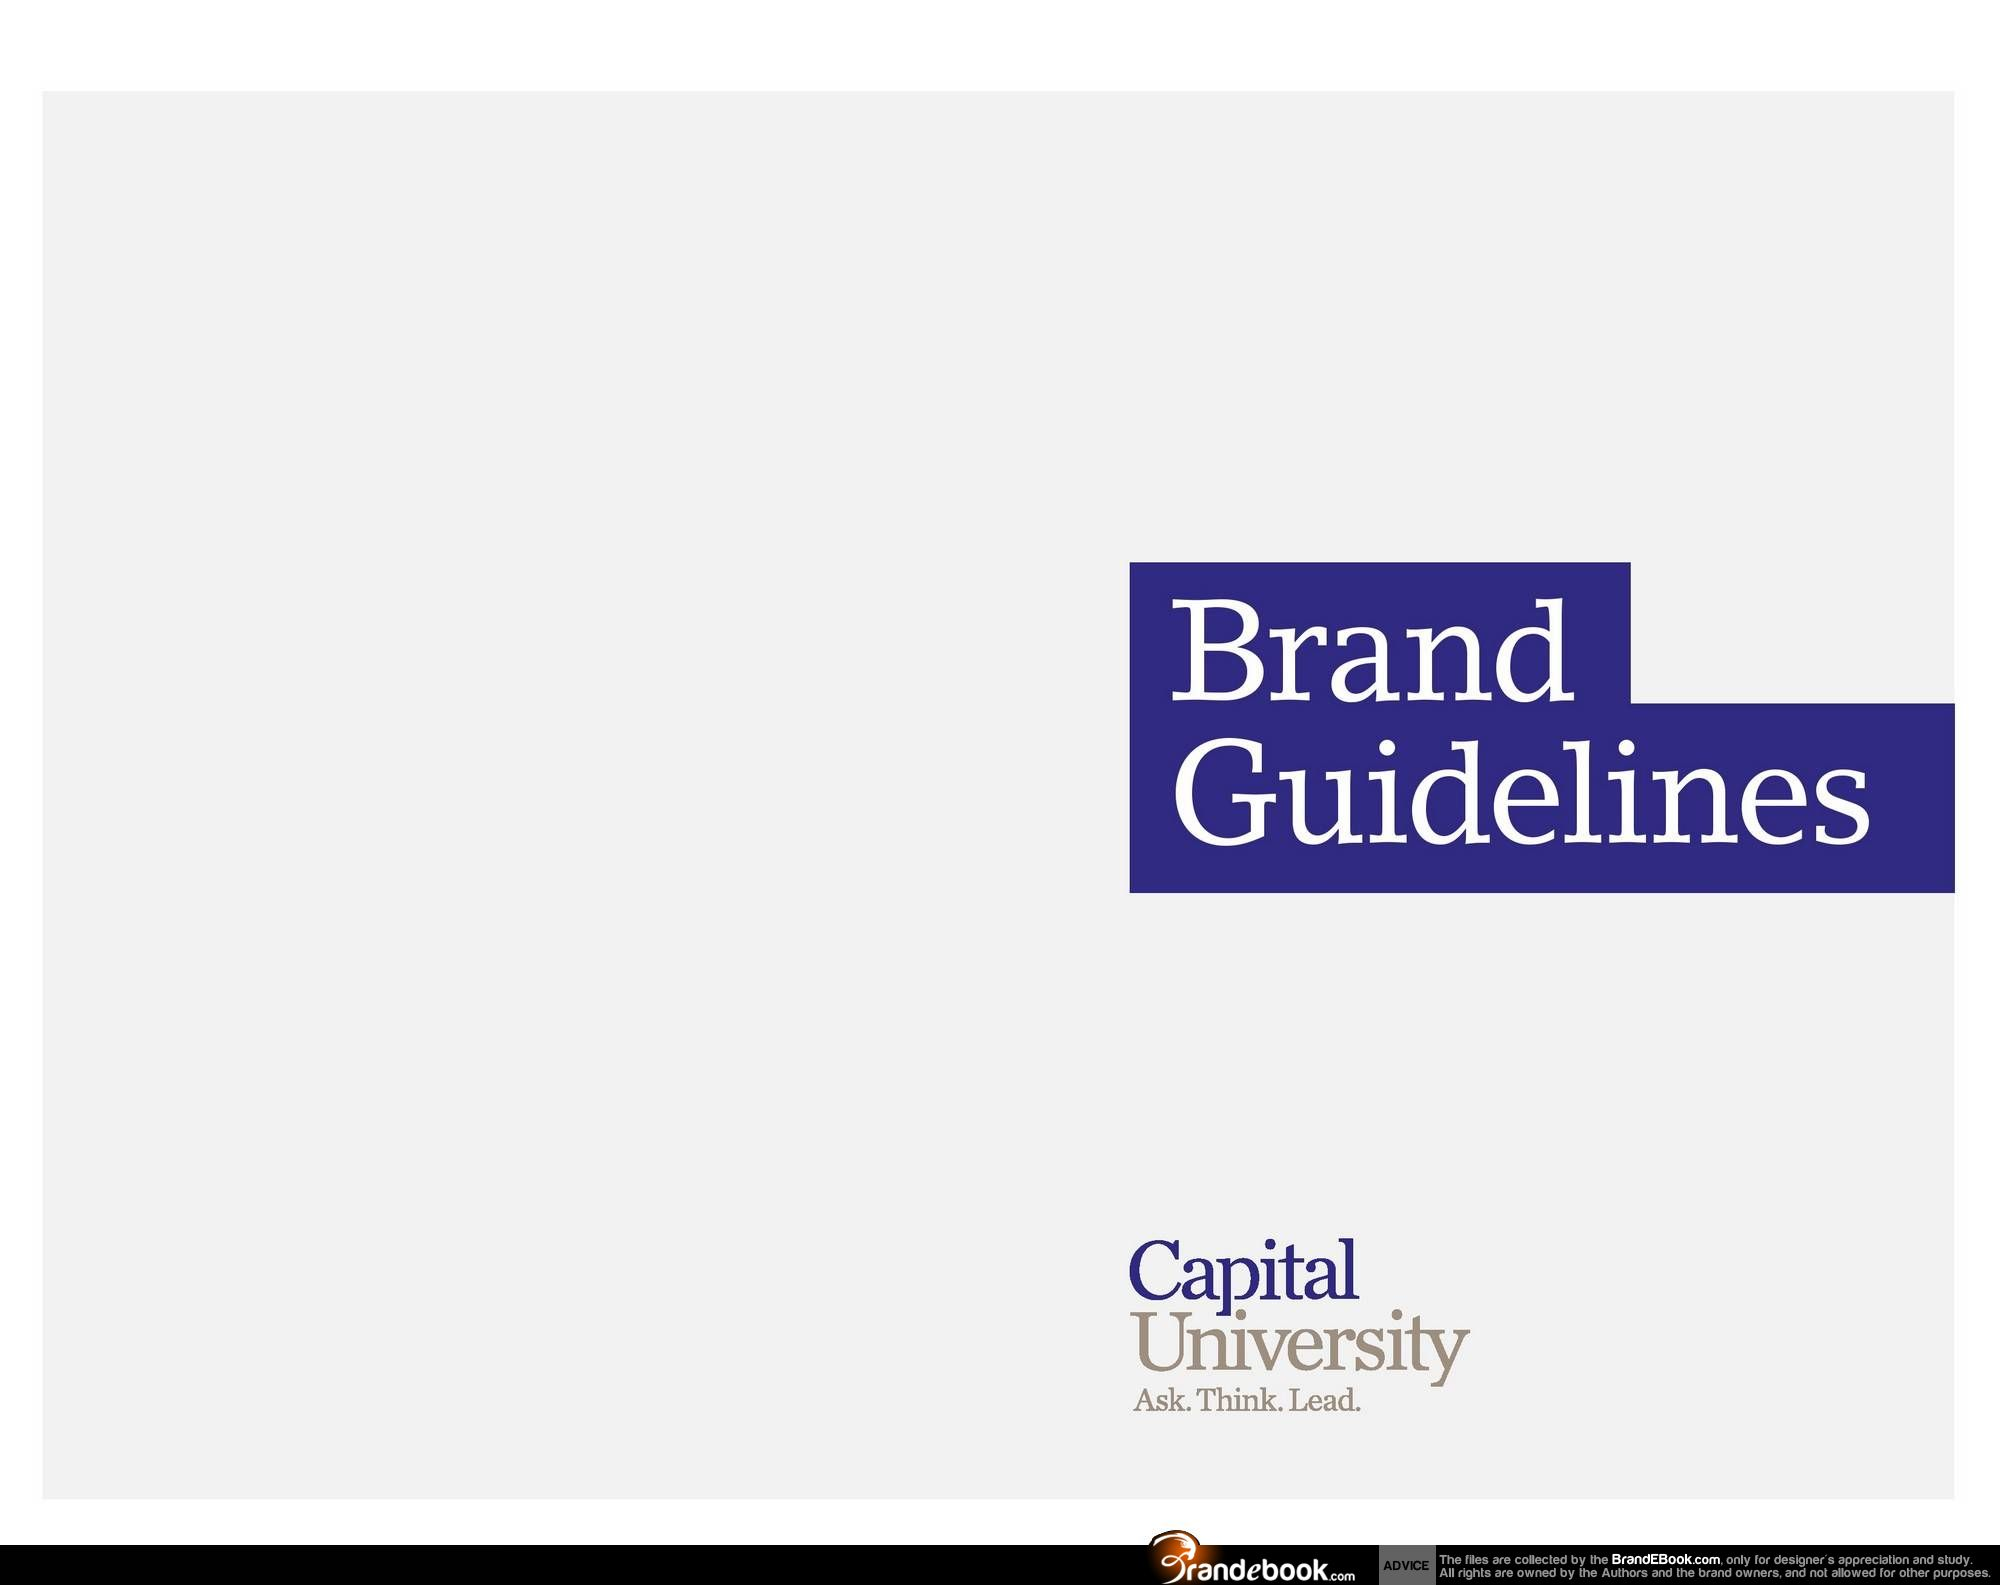 Capital University Brand Guidelines